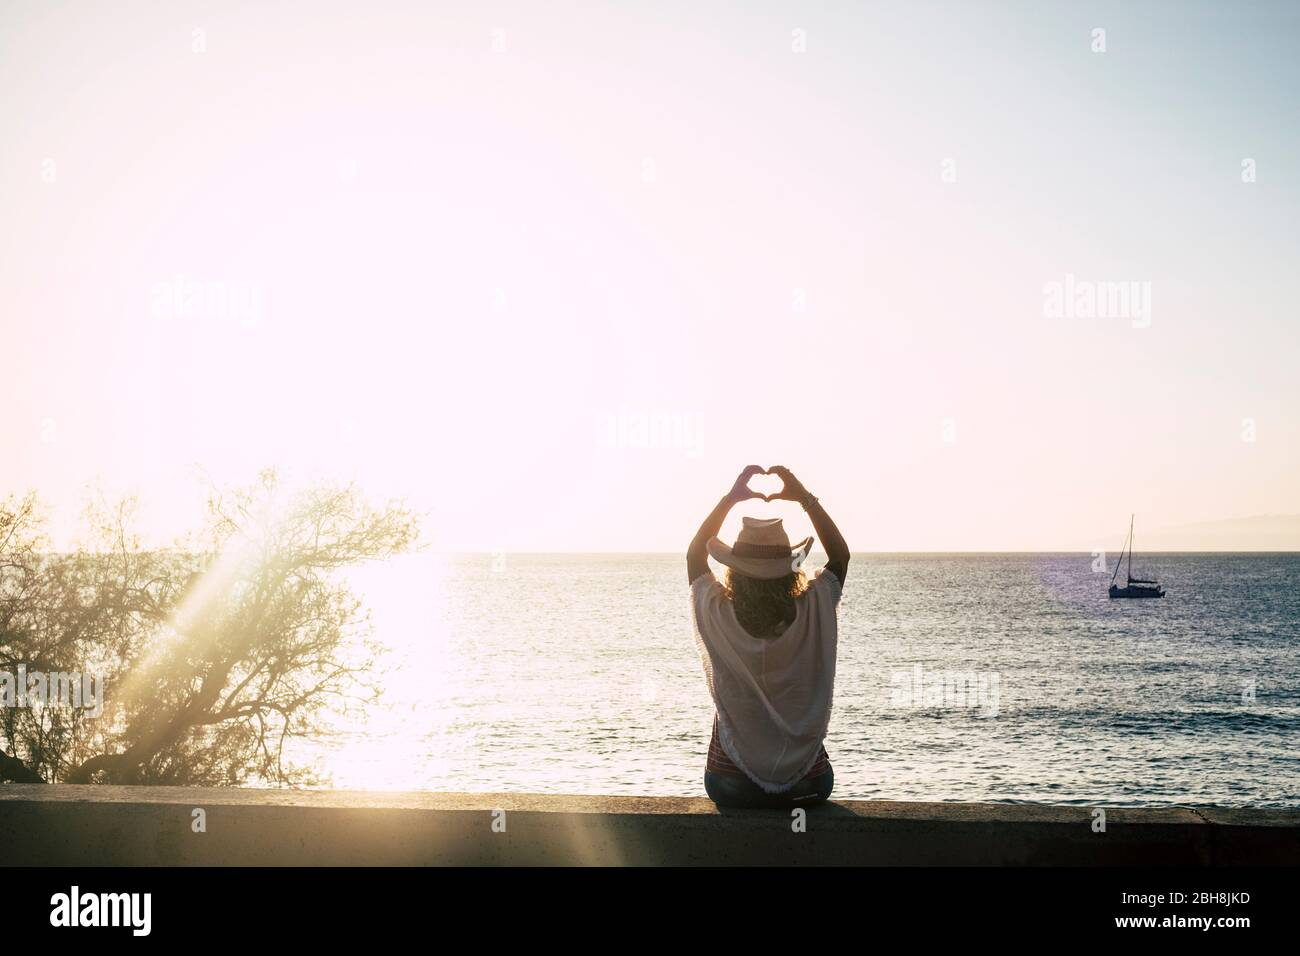 cute girl with cowbly summer style hat viewed from back doing hearth sign with hands - sun backlight and ocean with boat in background - freedom and enjoy lifestyle concept - clear sky Stock Photo